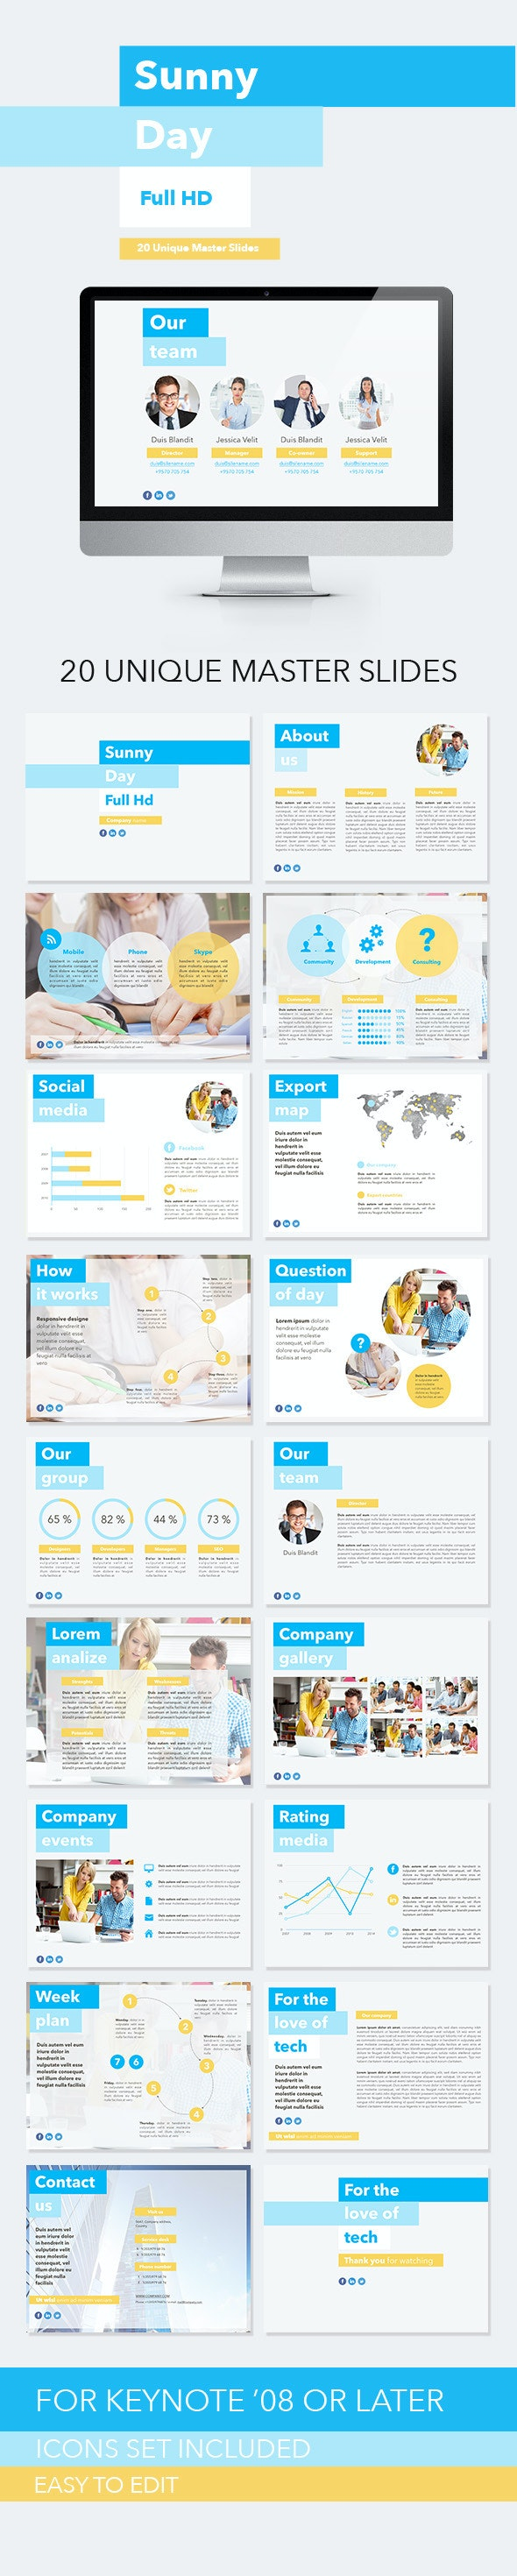 Sunny Day Keynote Template - Keynote Templates Presentation Templates